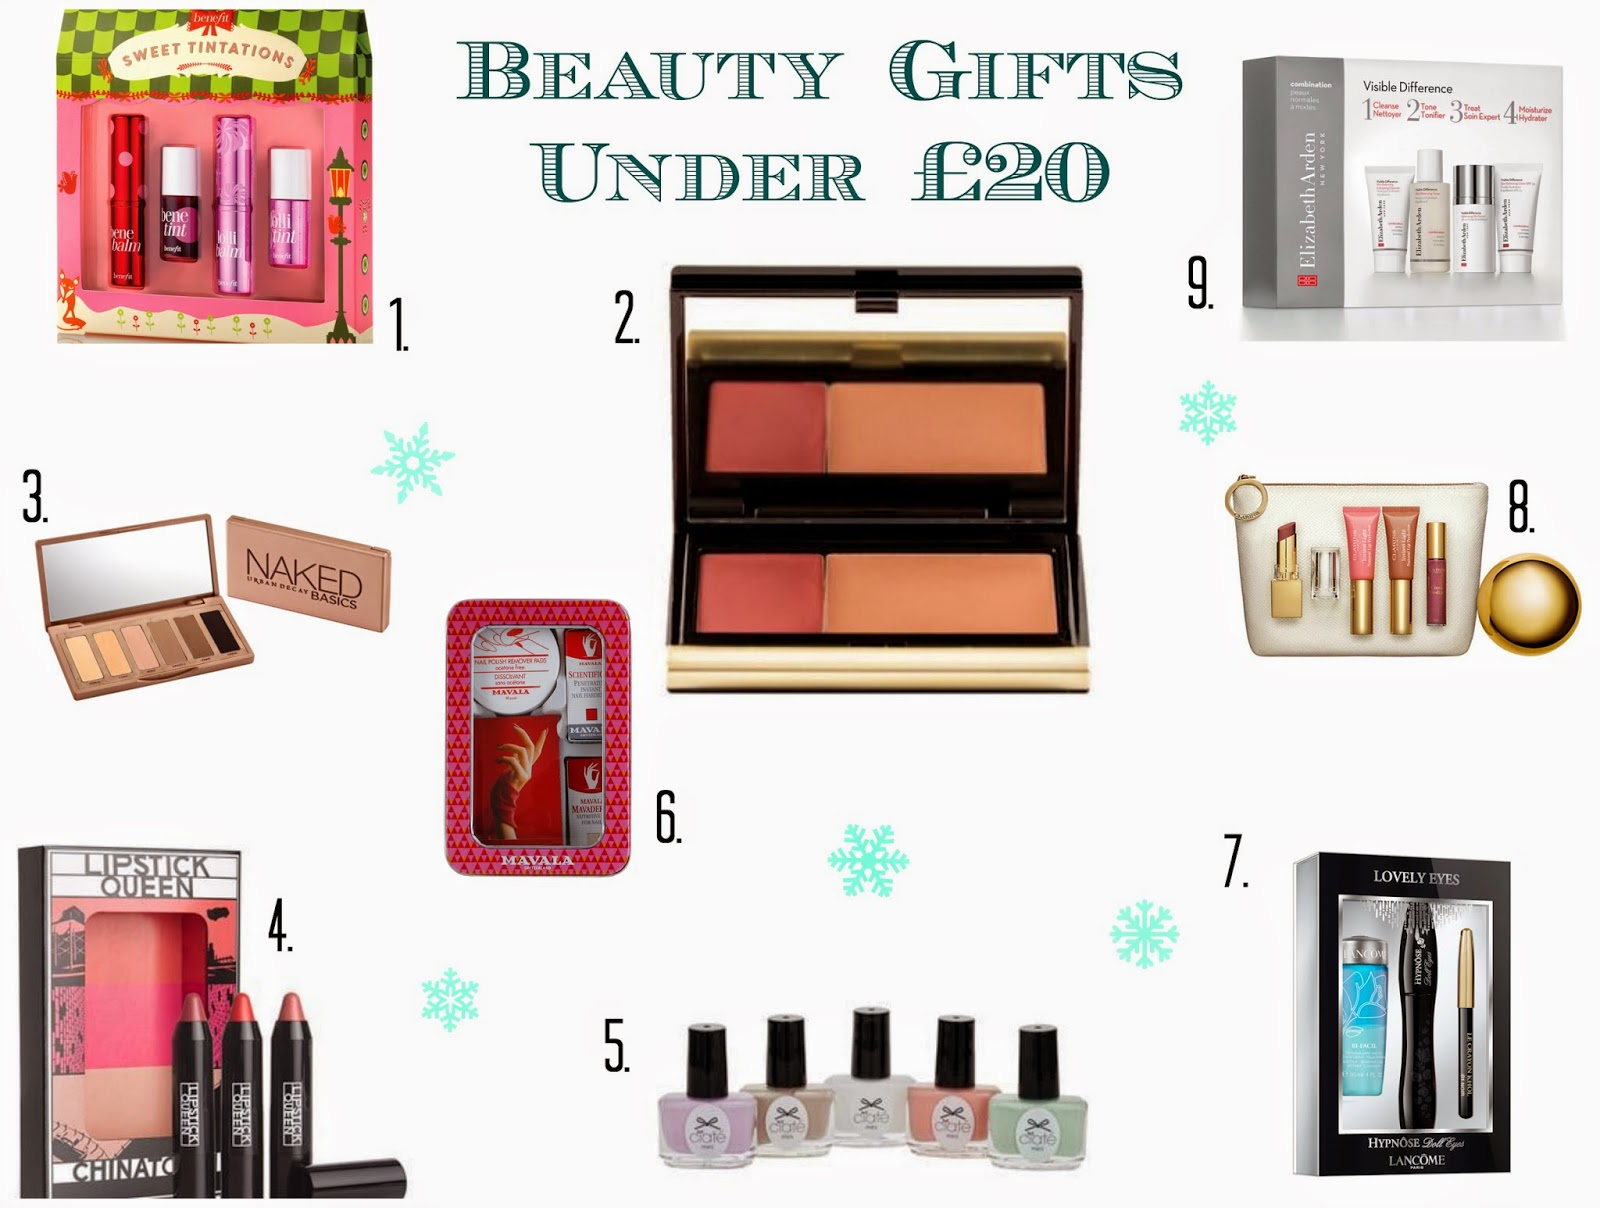 Blogmas Day 2 | Gift Guide for Her Under £20  sc 1 th 195 & Blogmas Day 2 | Gift Guide for Her Under £20 | Vogue My Stash